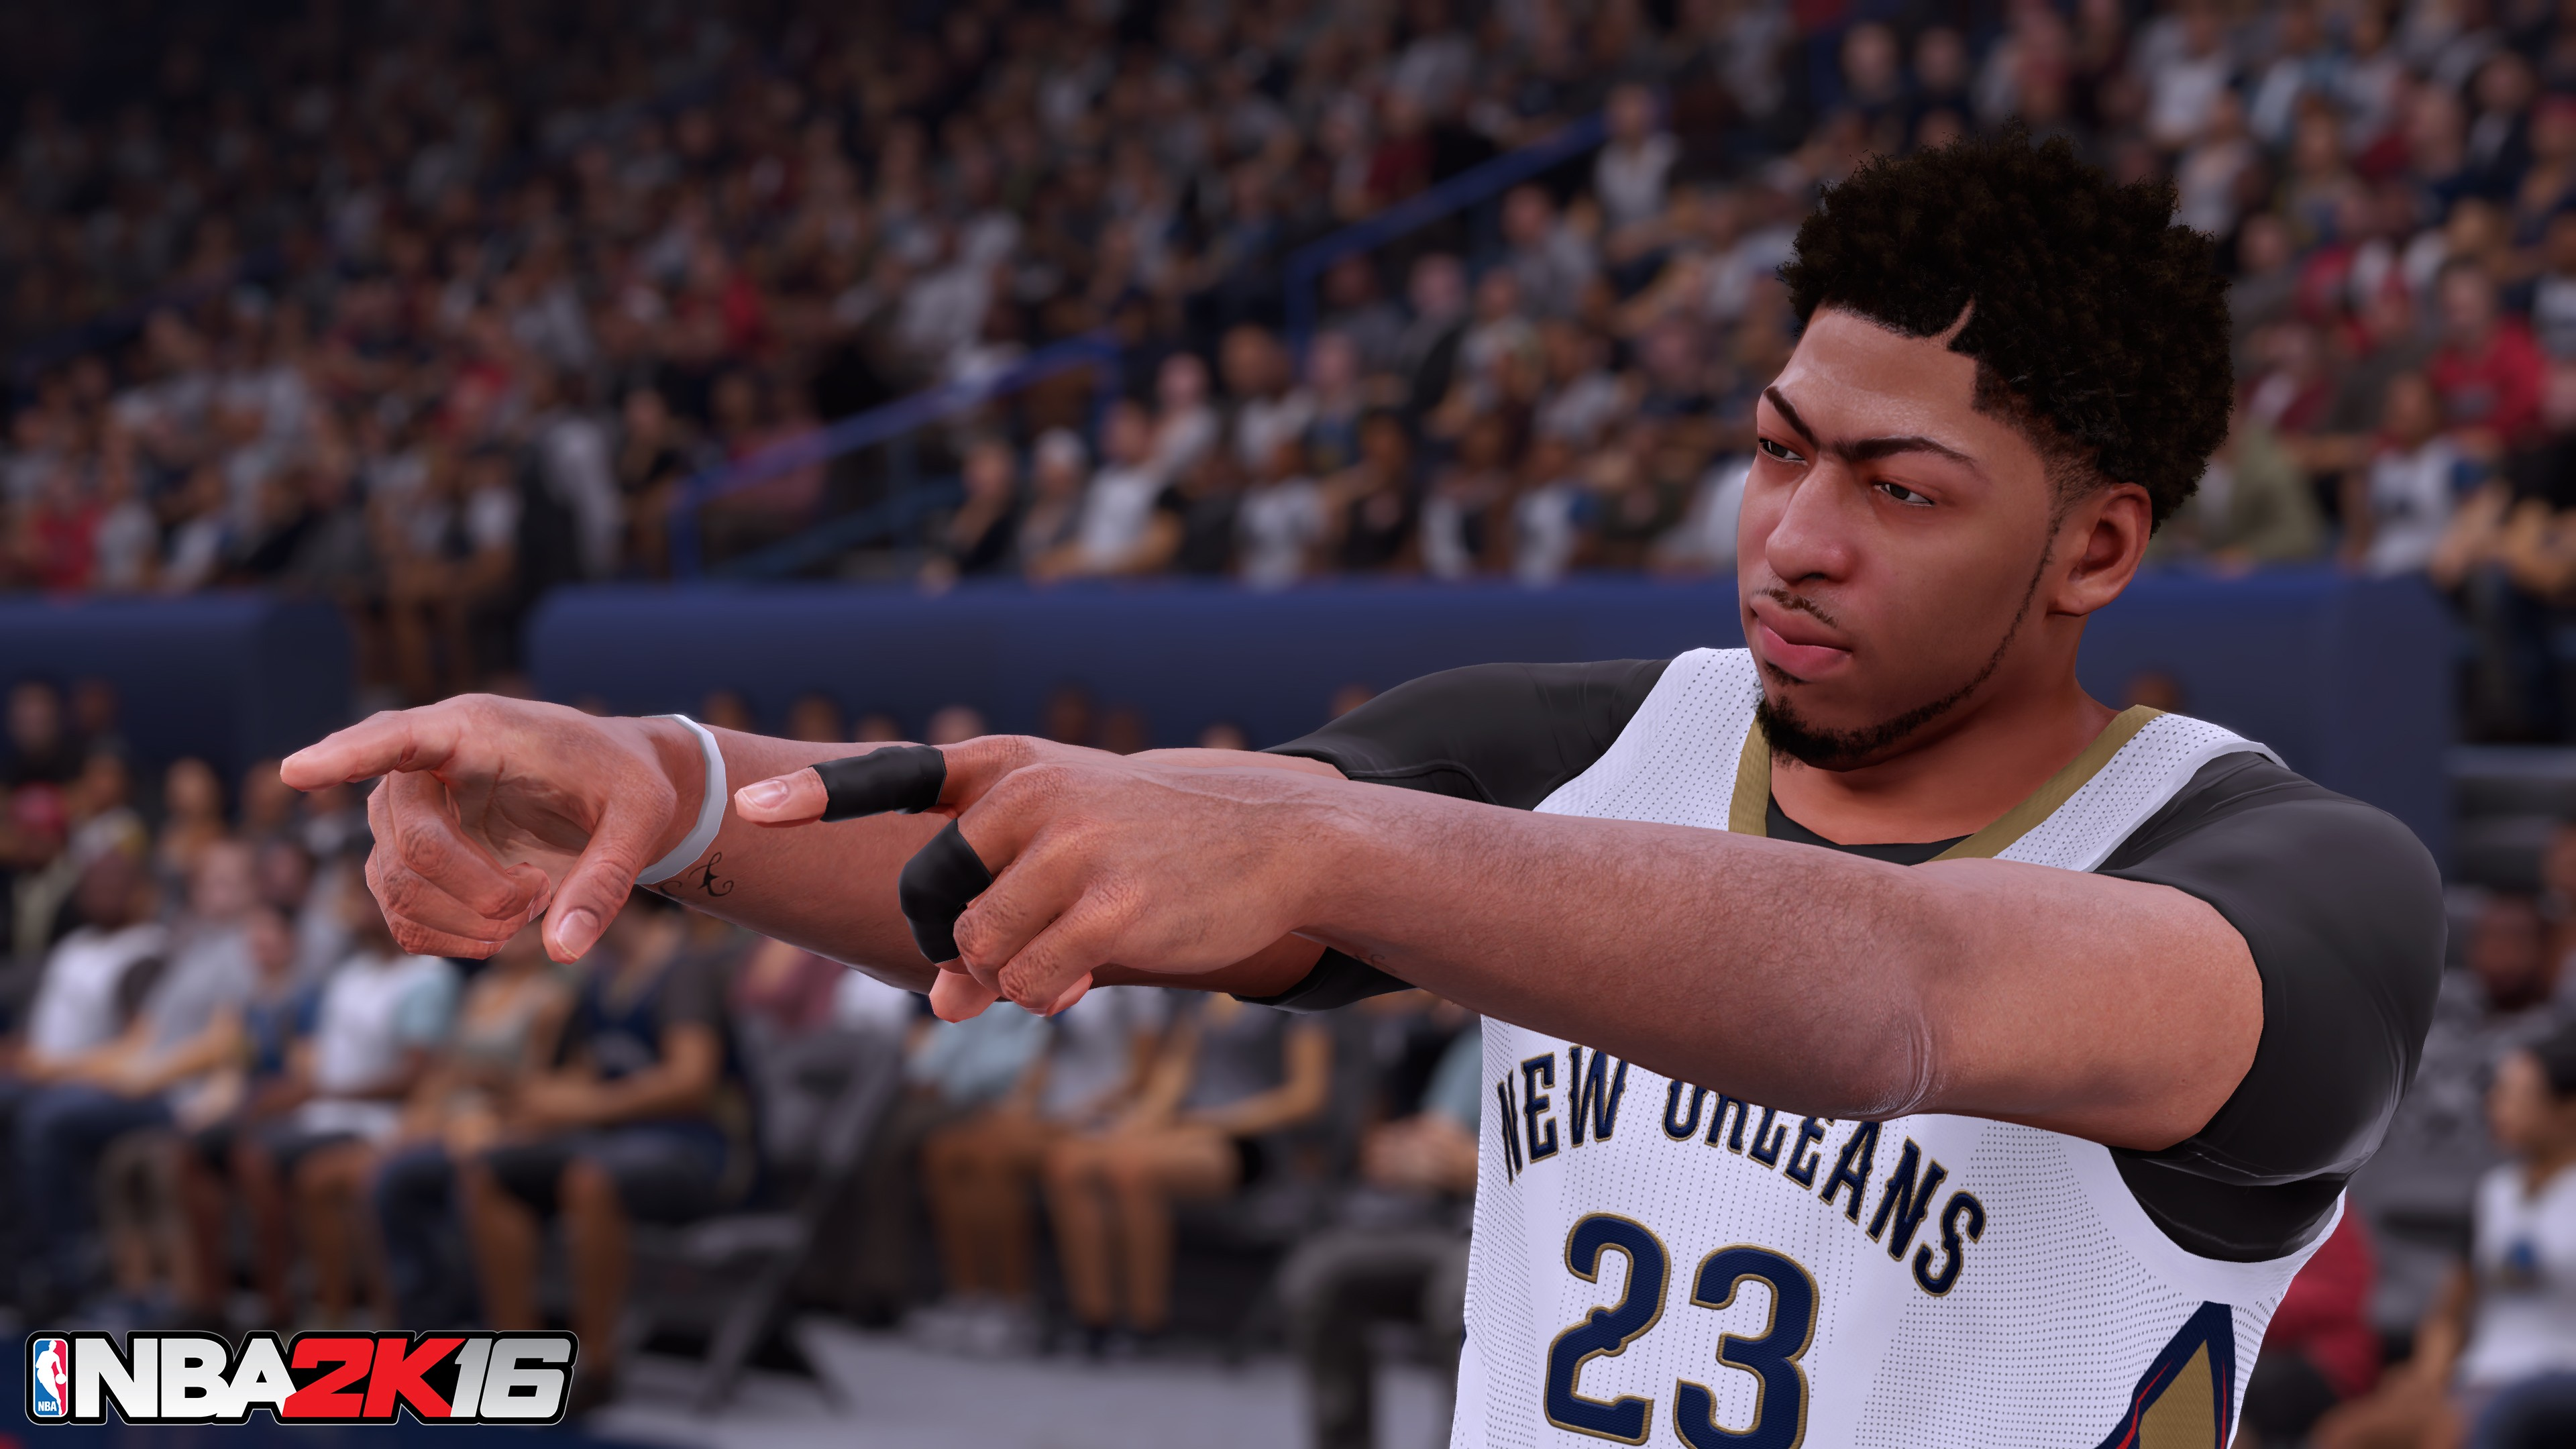 Watch Anthony Davis Rise In The Latest Nba 2k16 Trailer